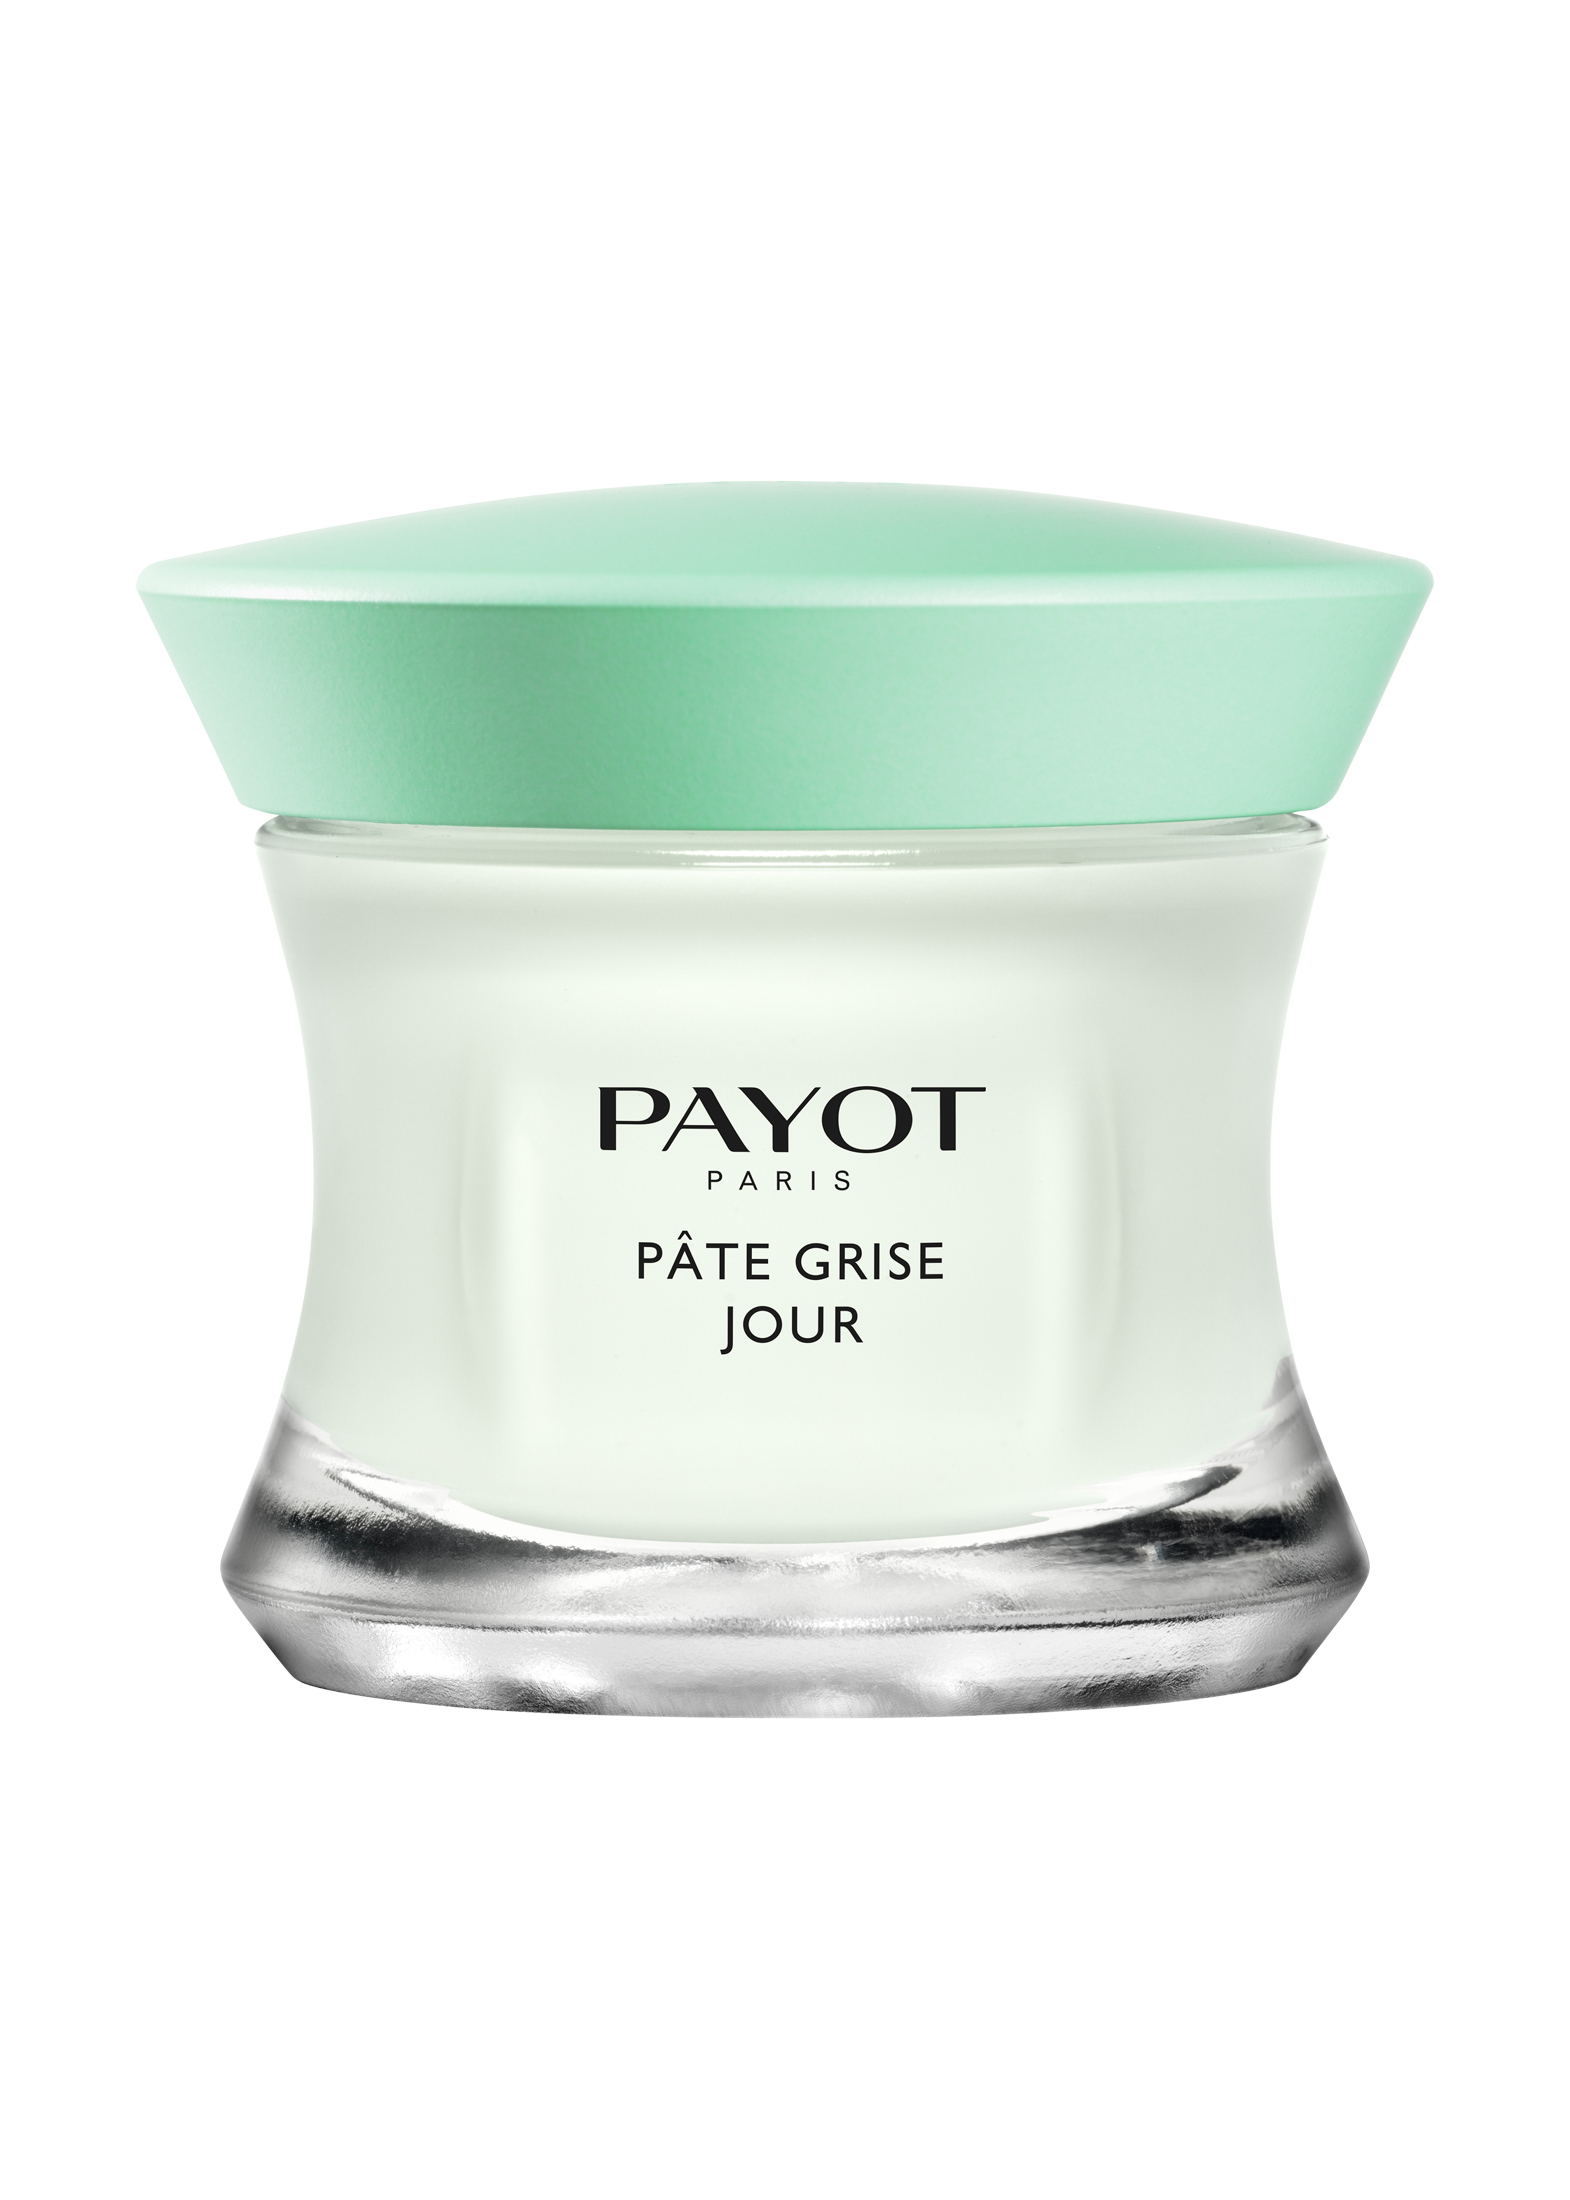 Pate Grise Jour, 50ml image number 0